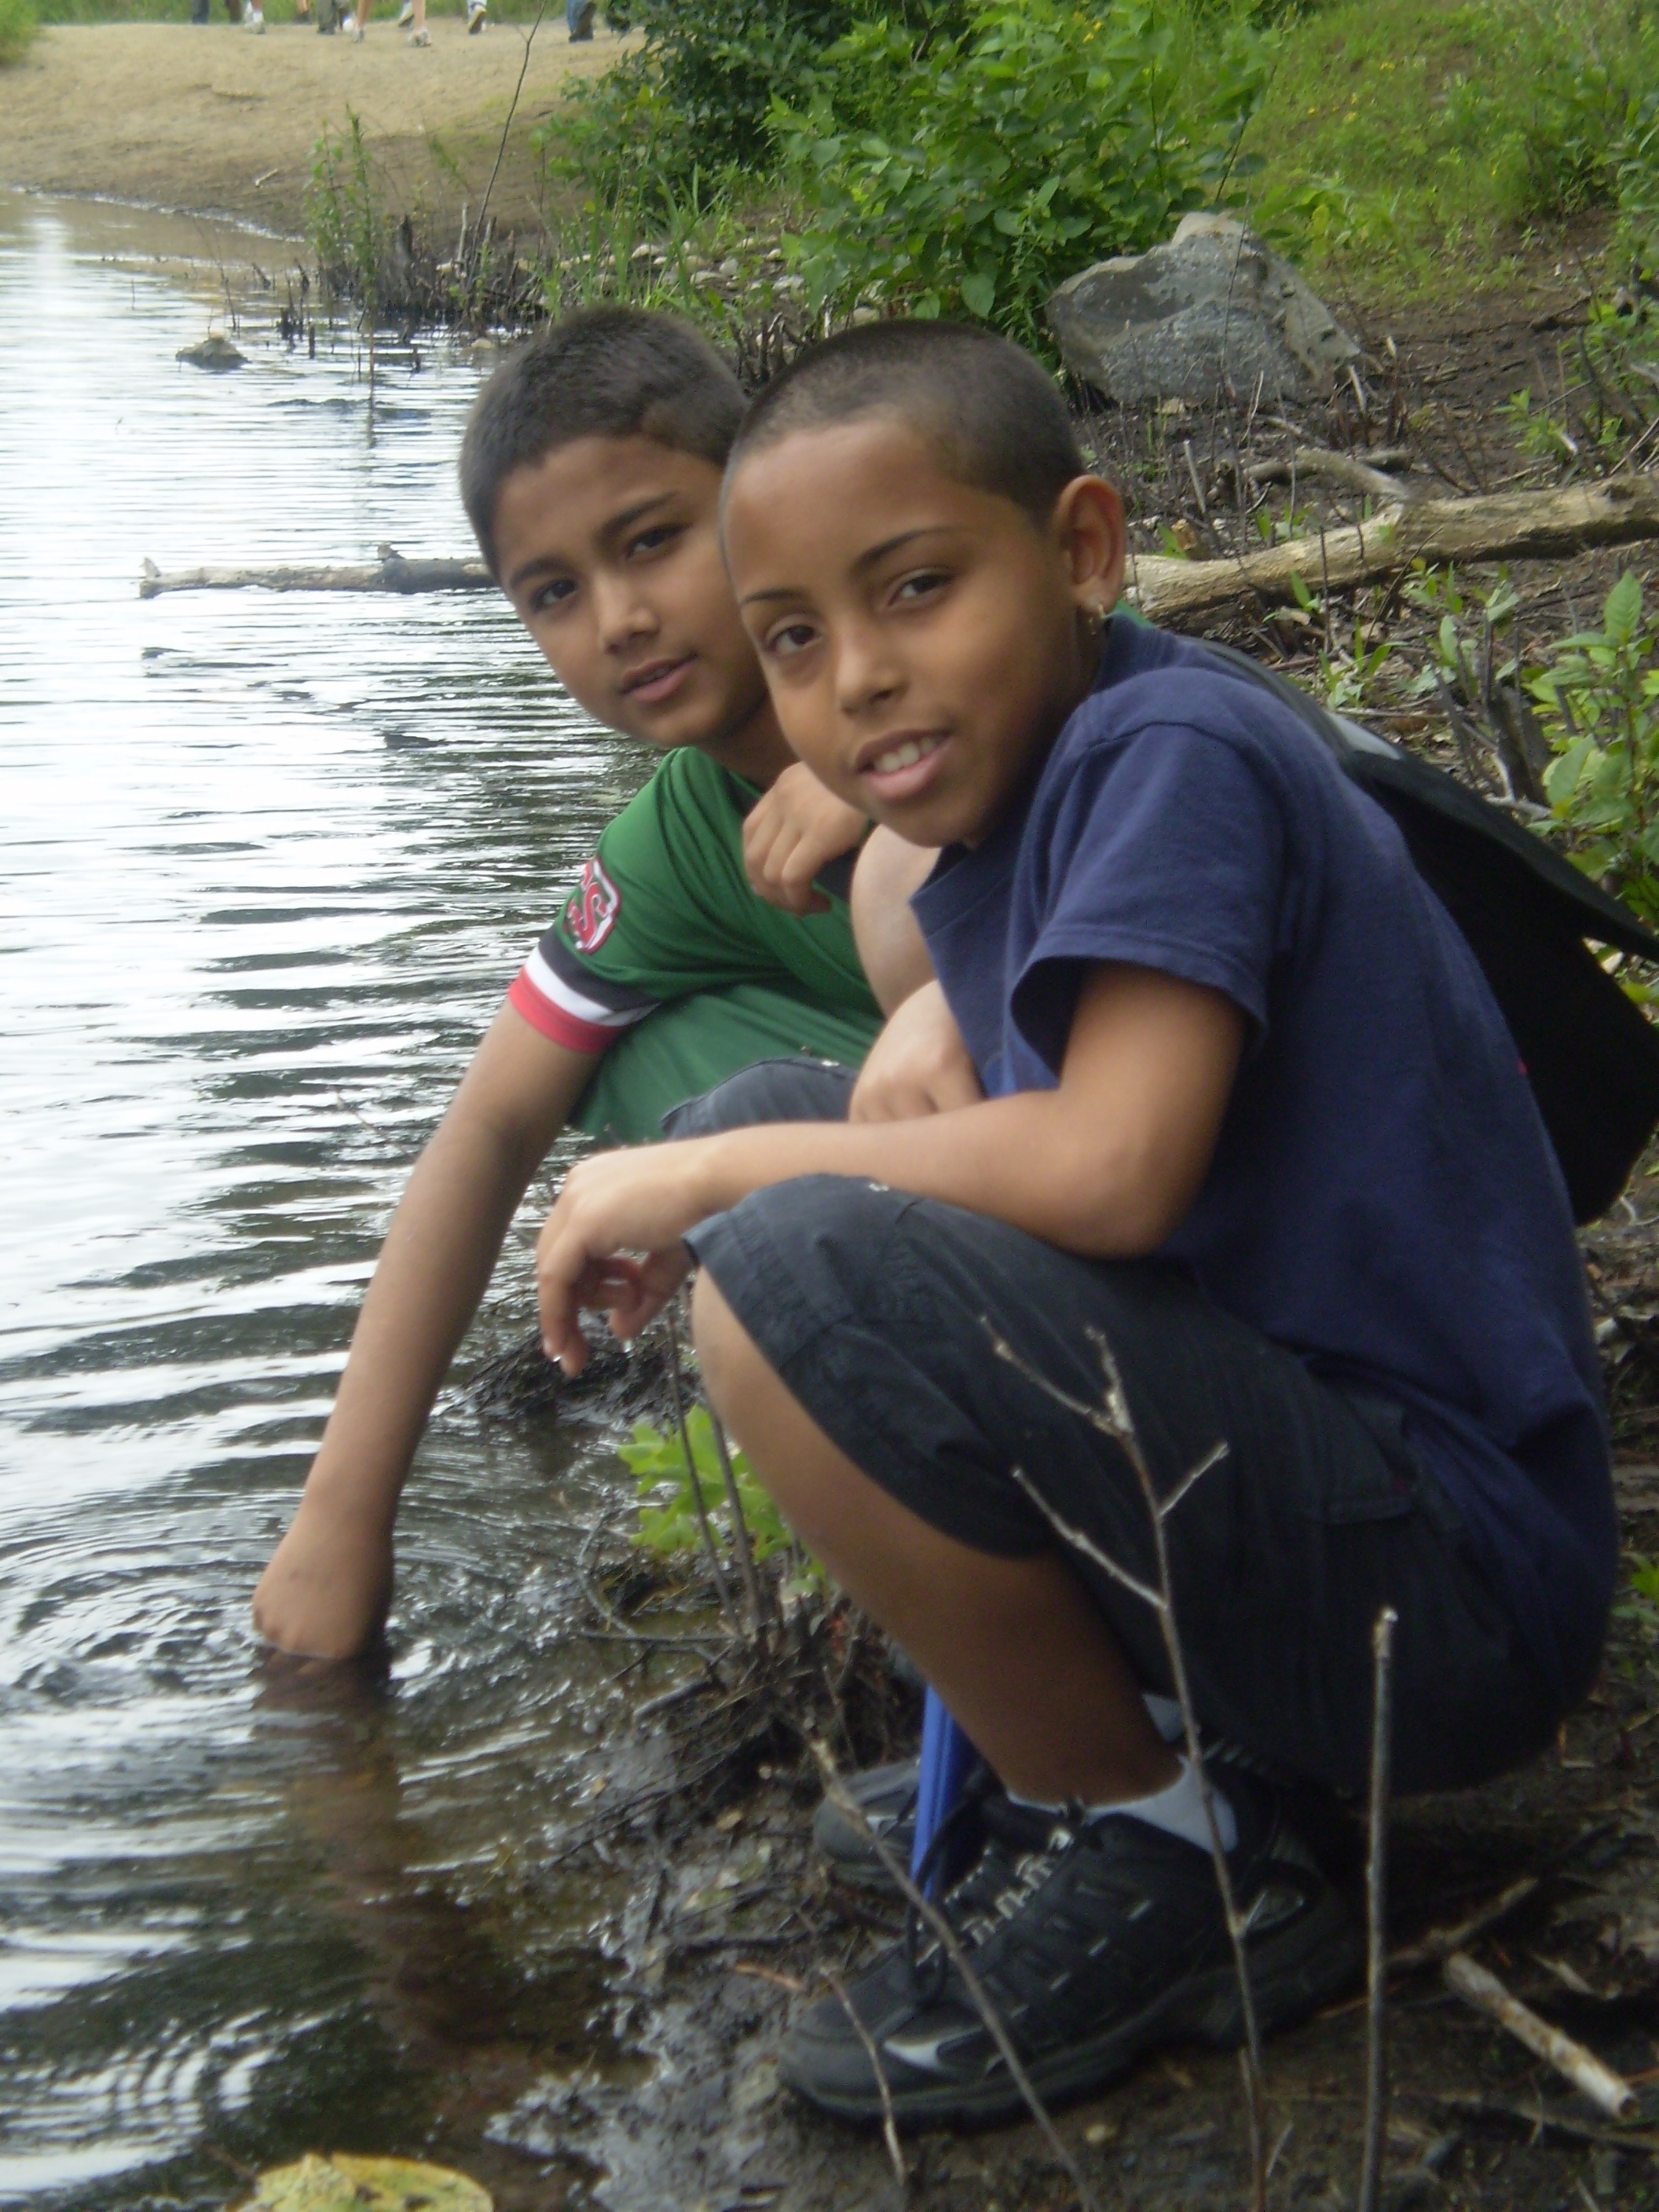 Two young boys kneeling by a body of murky water